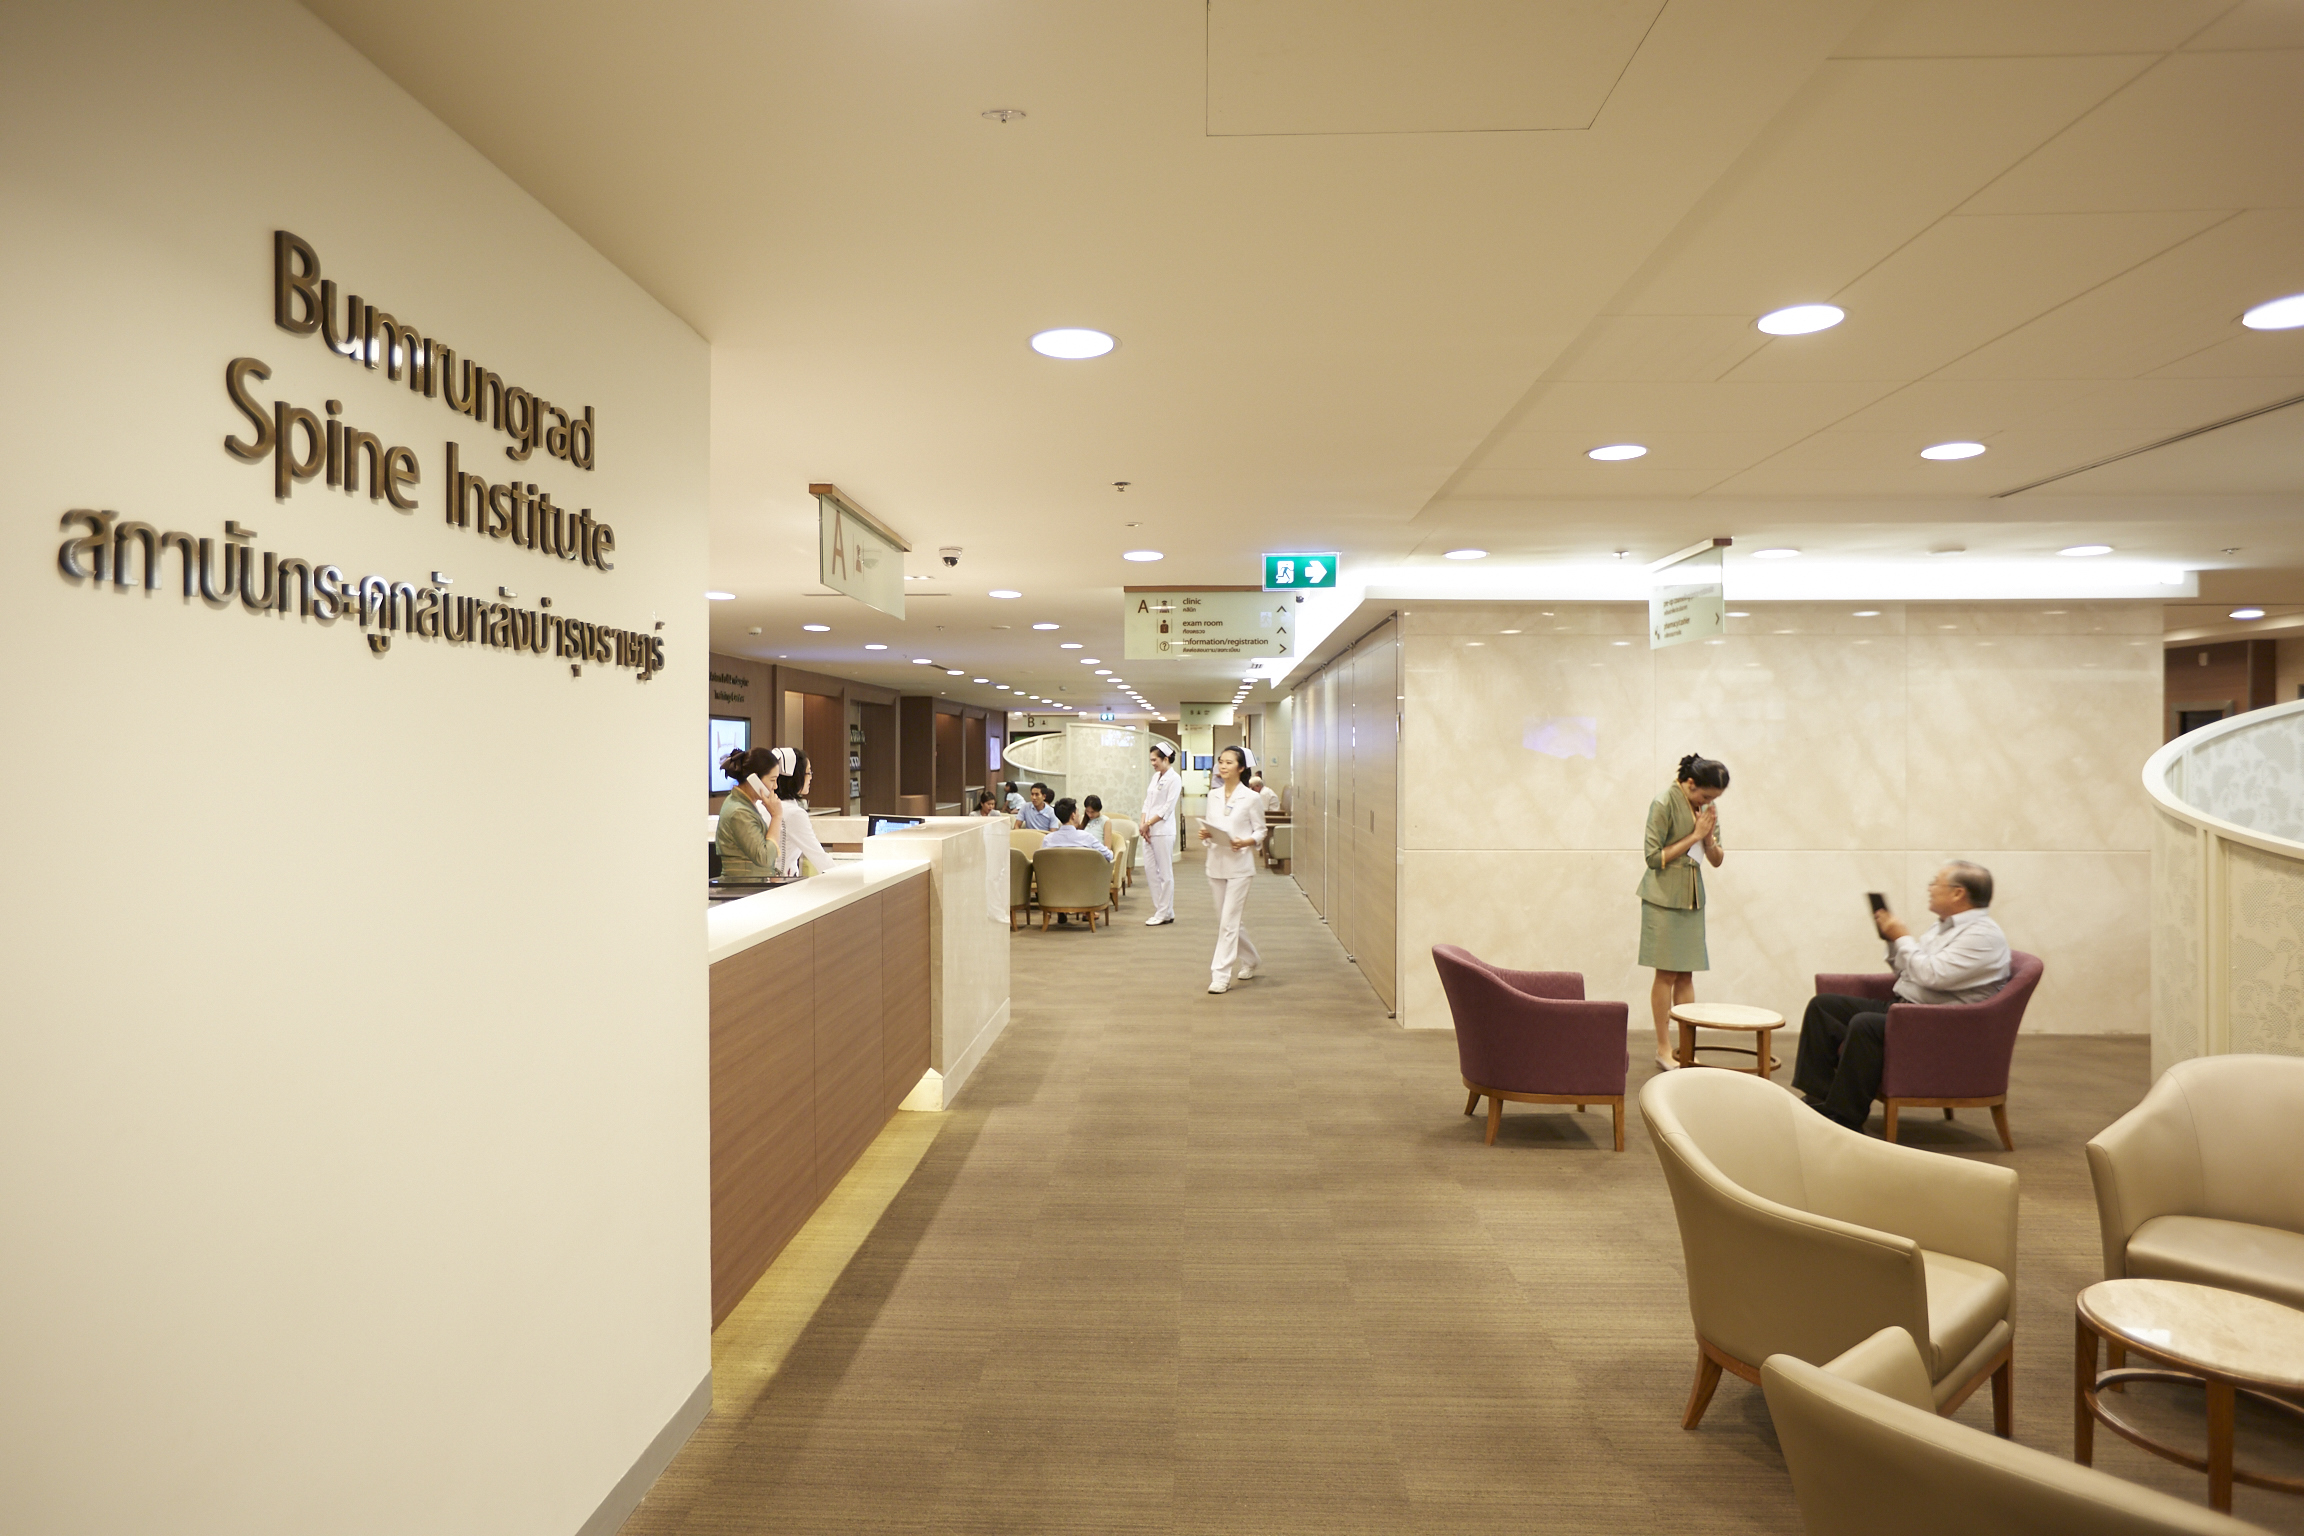 Spine surgery hospital in Bangkok, Thailand